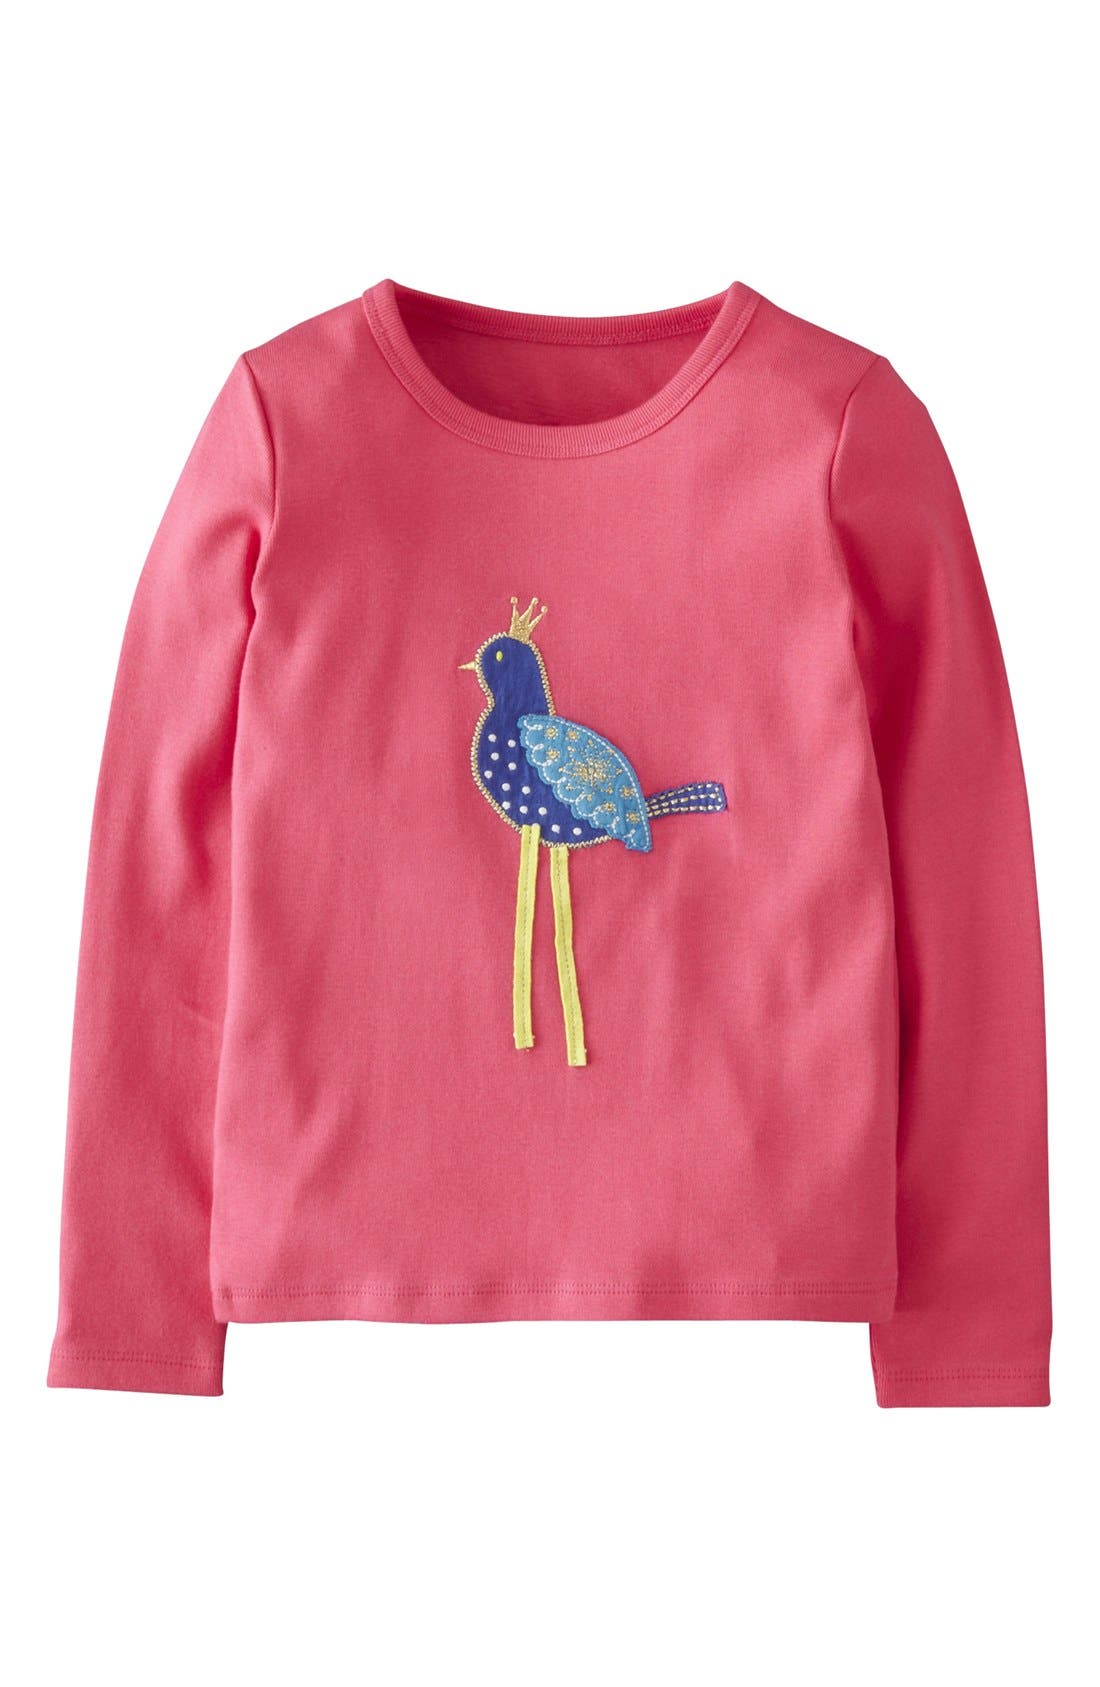 Main Image - Mini Boden Appliqué Long Sleeve Tee (Toddler Girls, Little Girls & Big Girls)